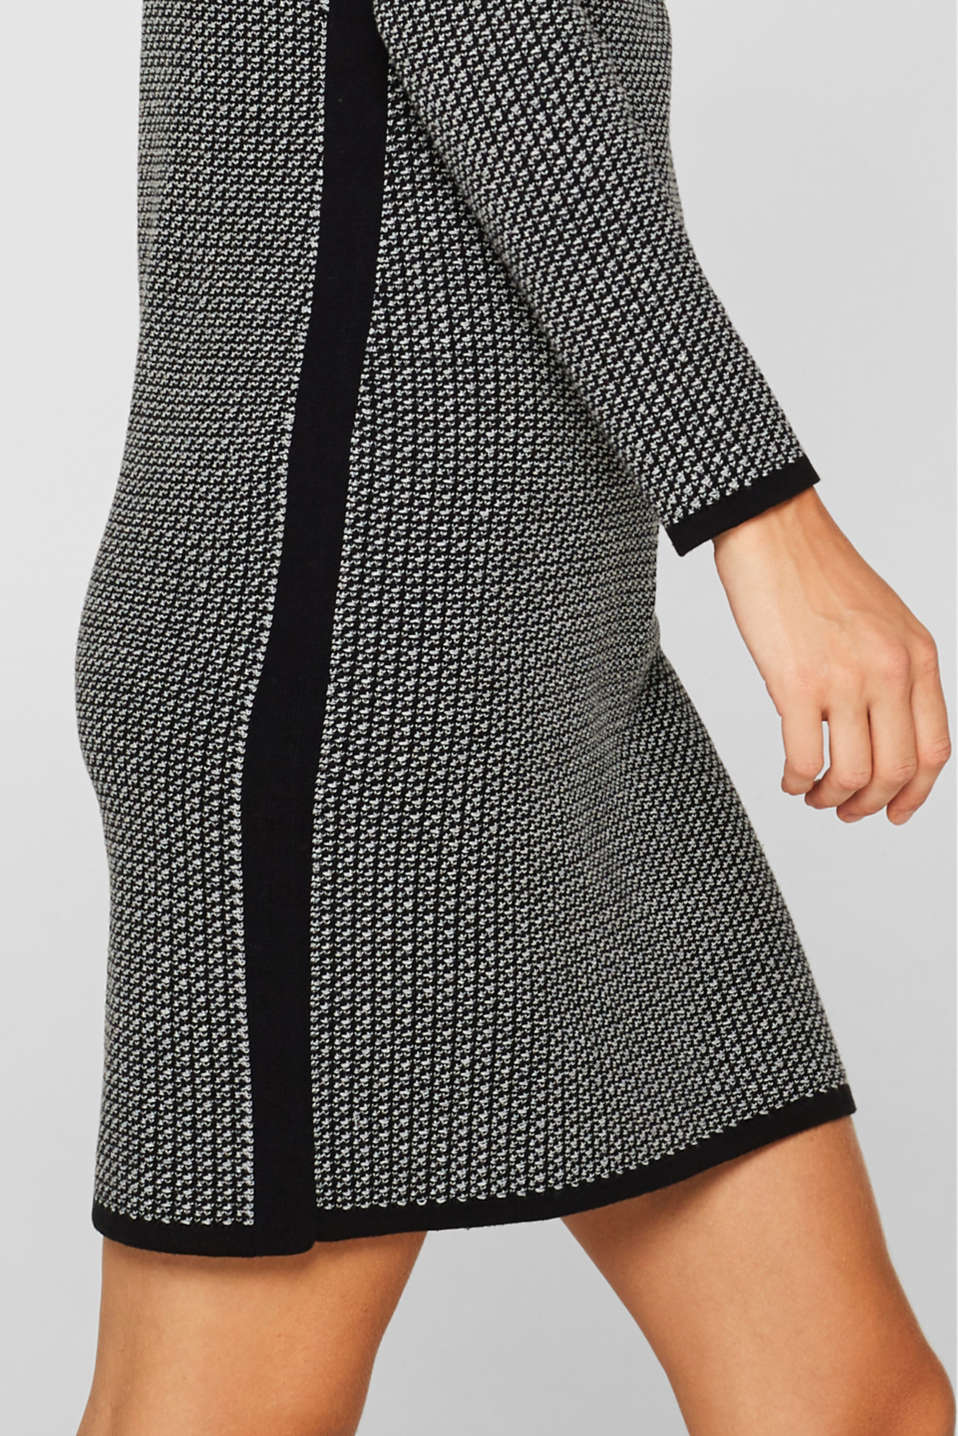 Knit dress with stripes and texture, BLACK 2, detail image number 6